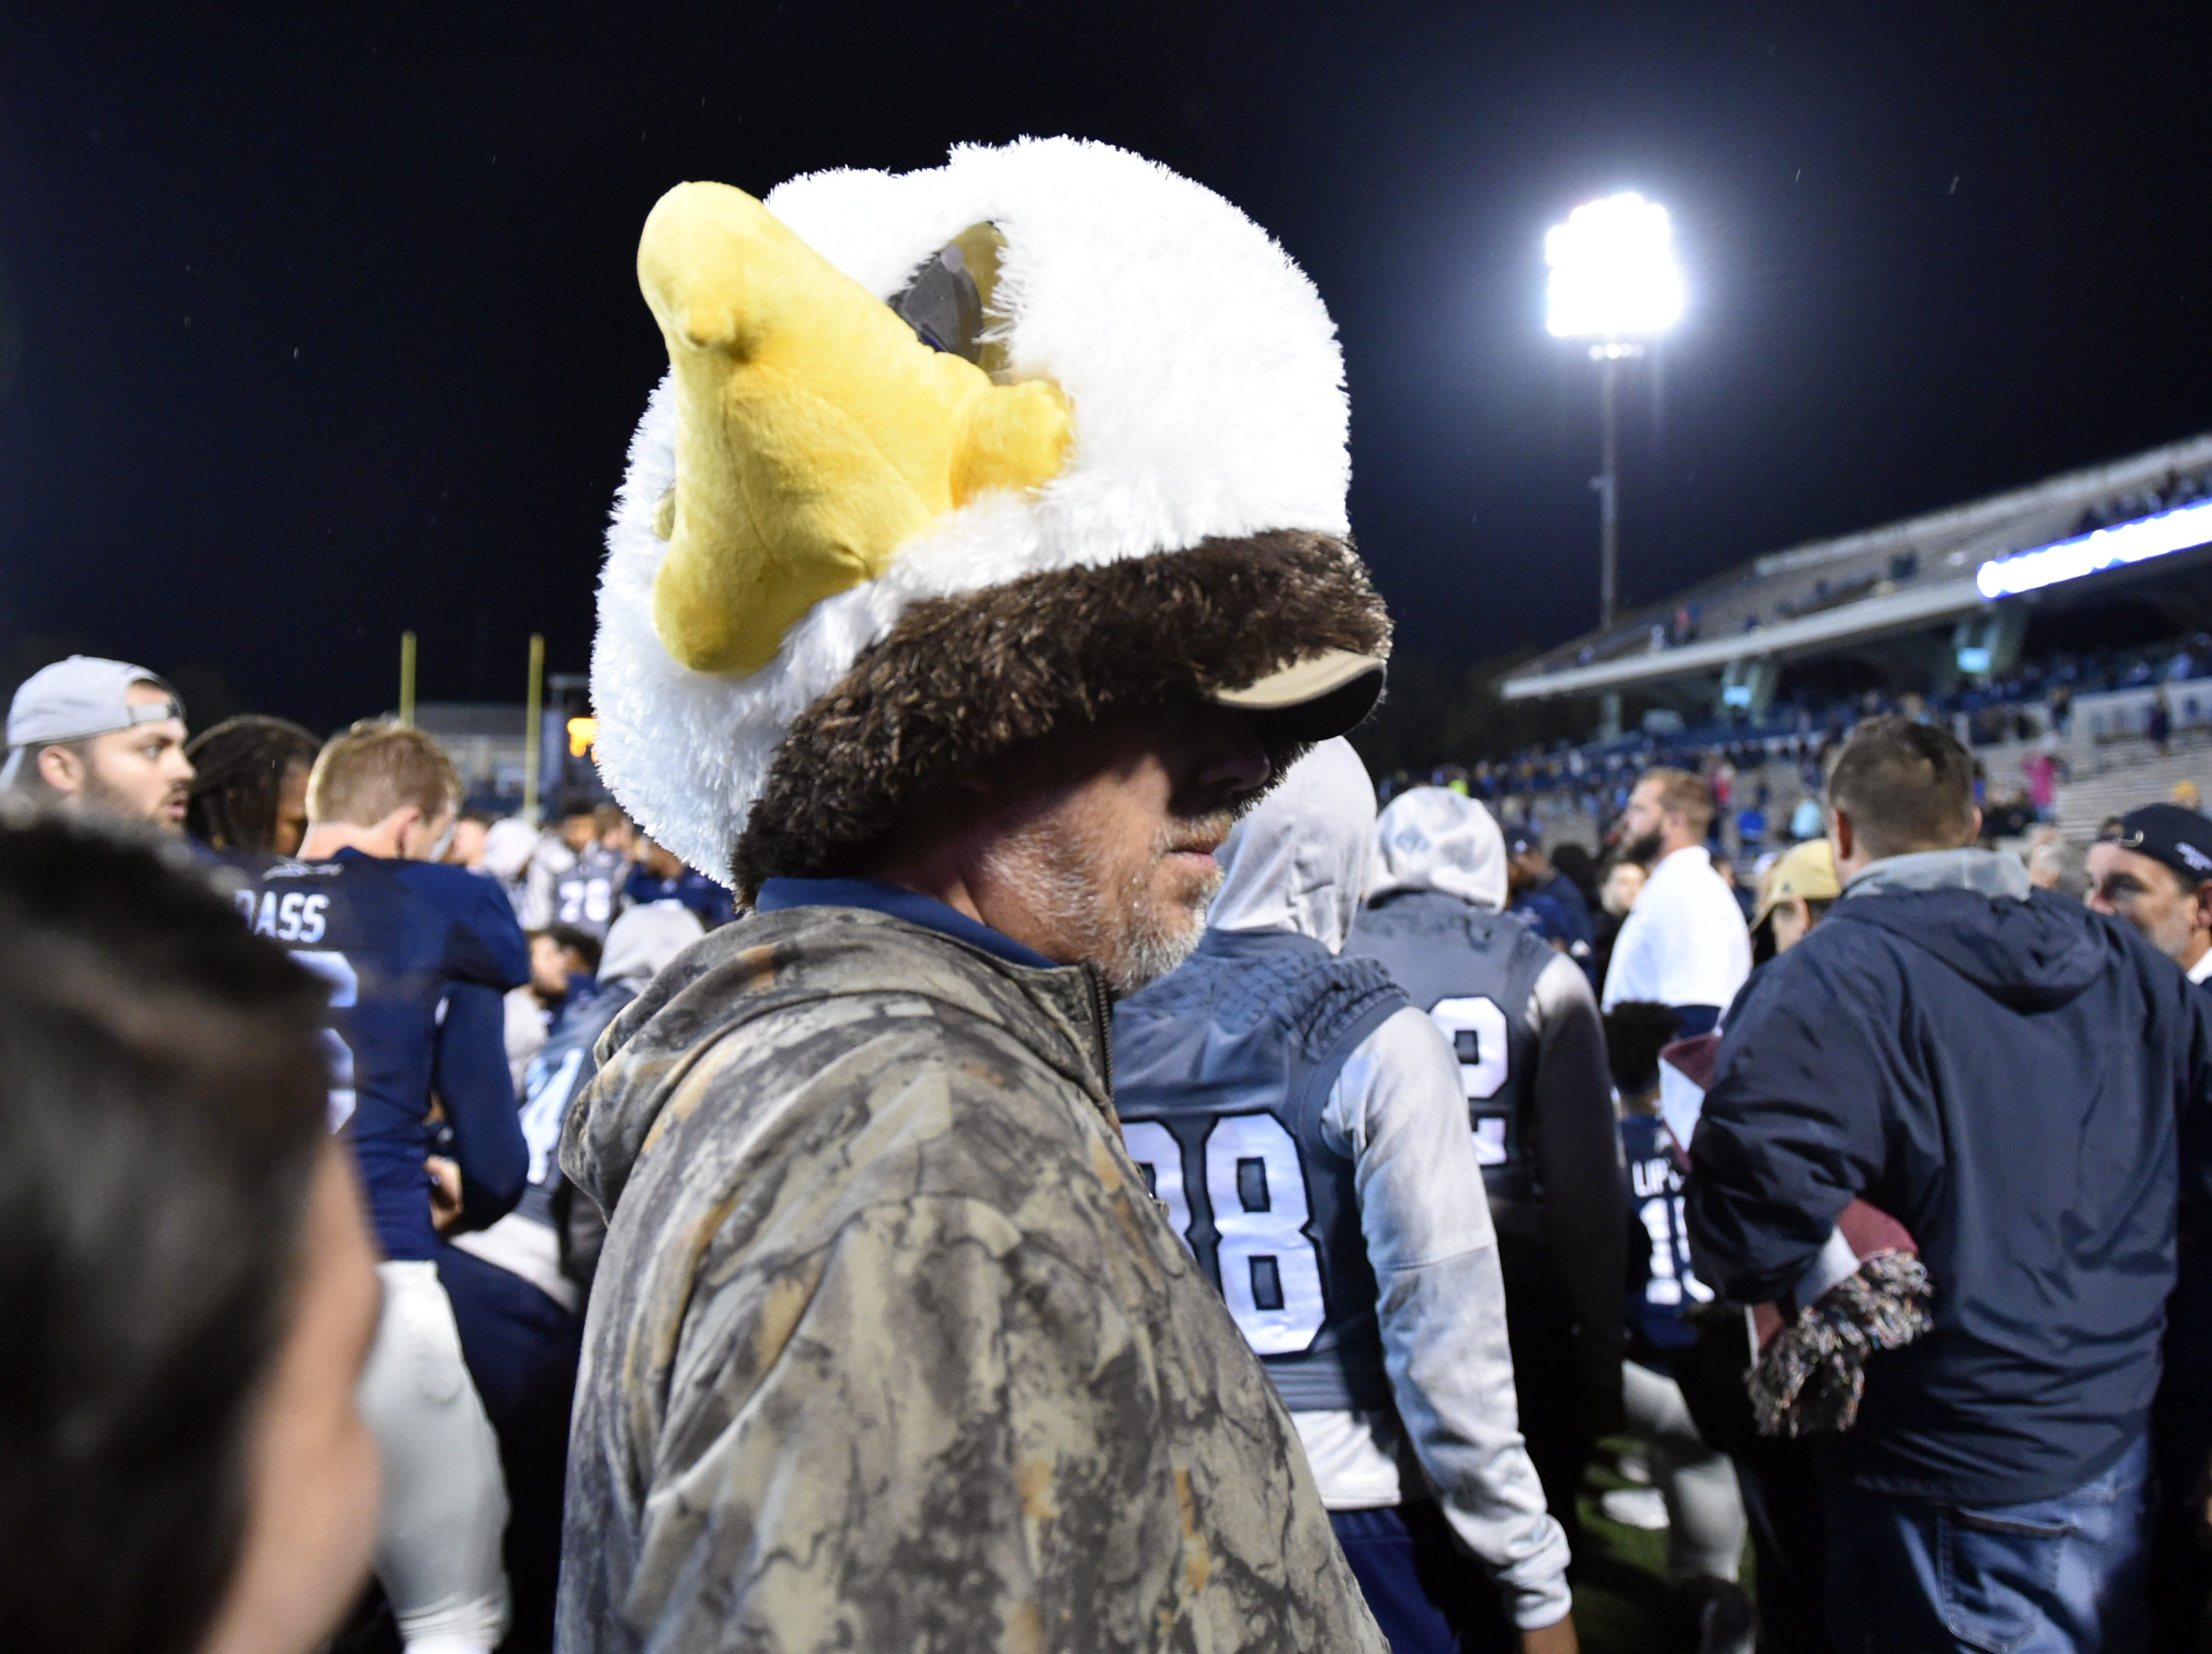 Week 9: A fan wears the Georgia Southern Eagles mascot head after finding it on the ground after defeating the team defeated the Appalachian State Mountaineers at Allen E. Paulson Stadium.